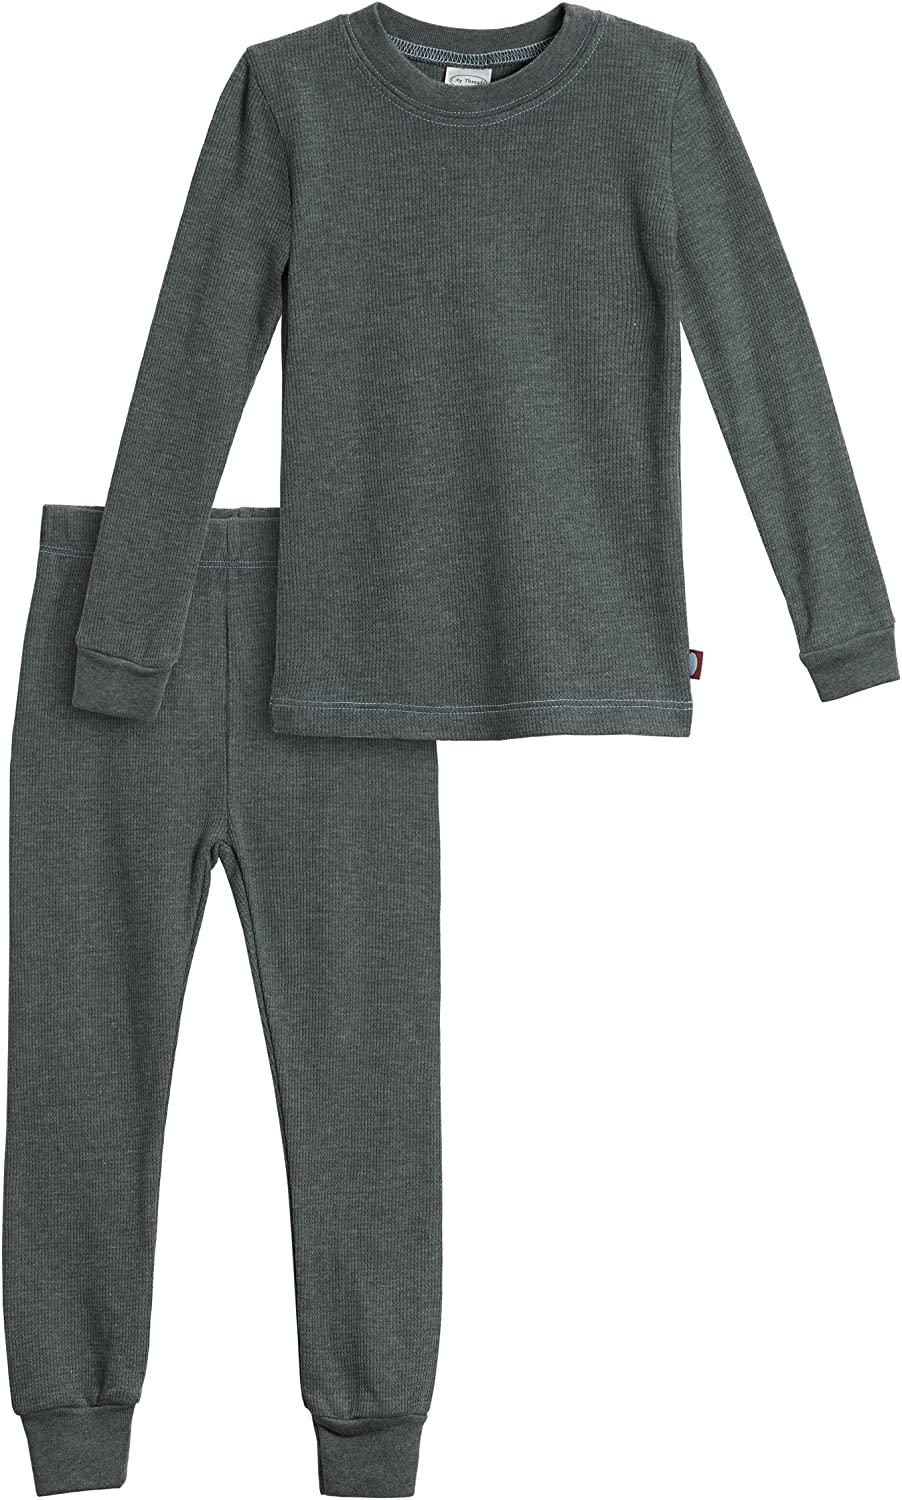 Made in USA City Threads Boys Thermal Underwear Long John Set